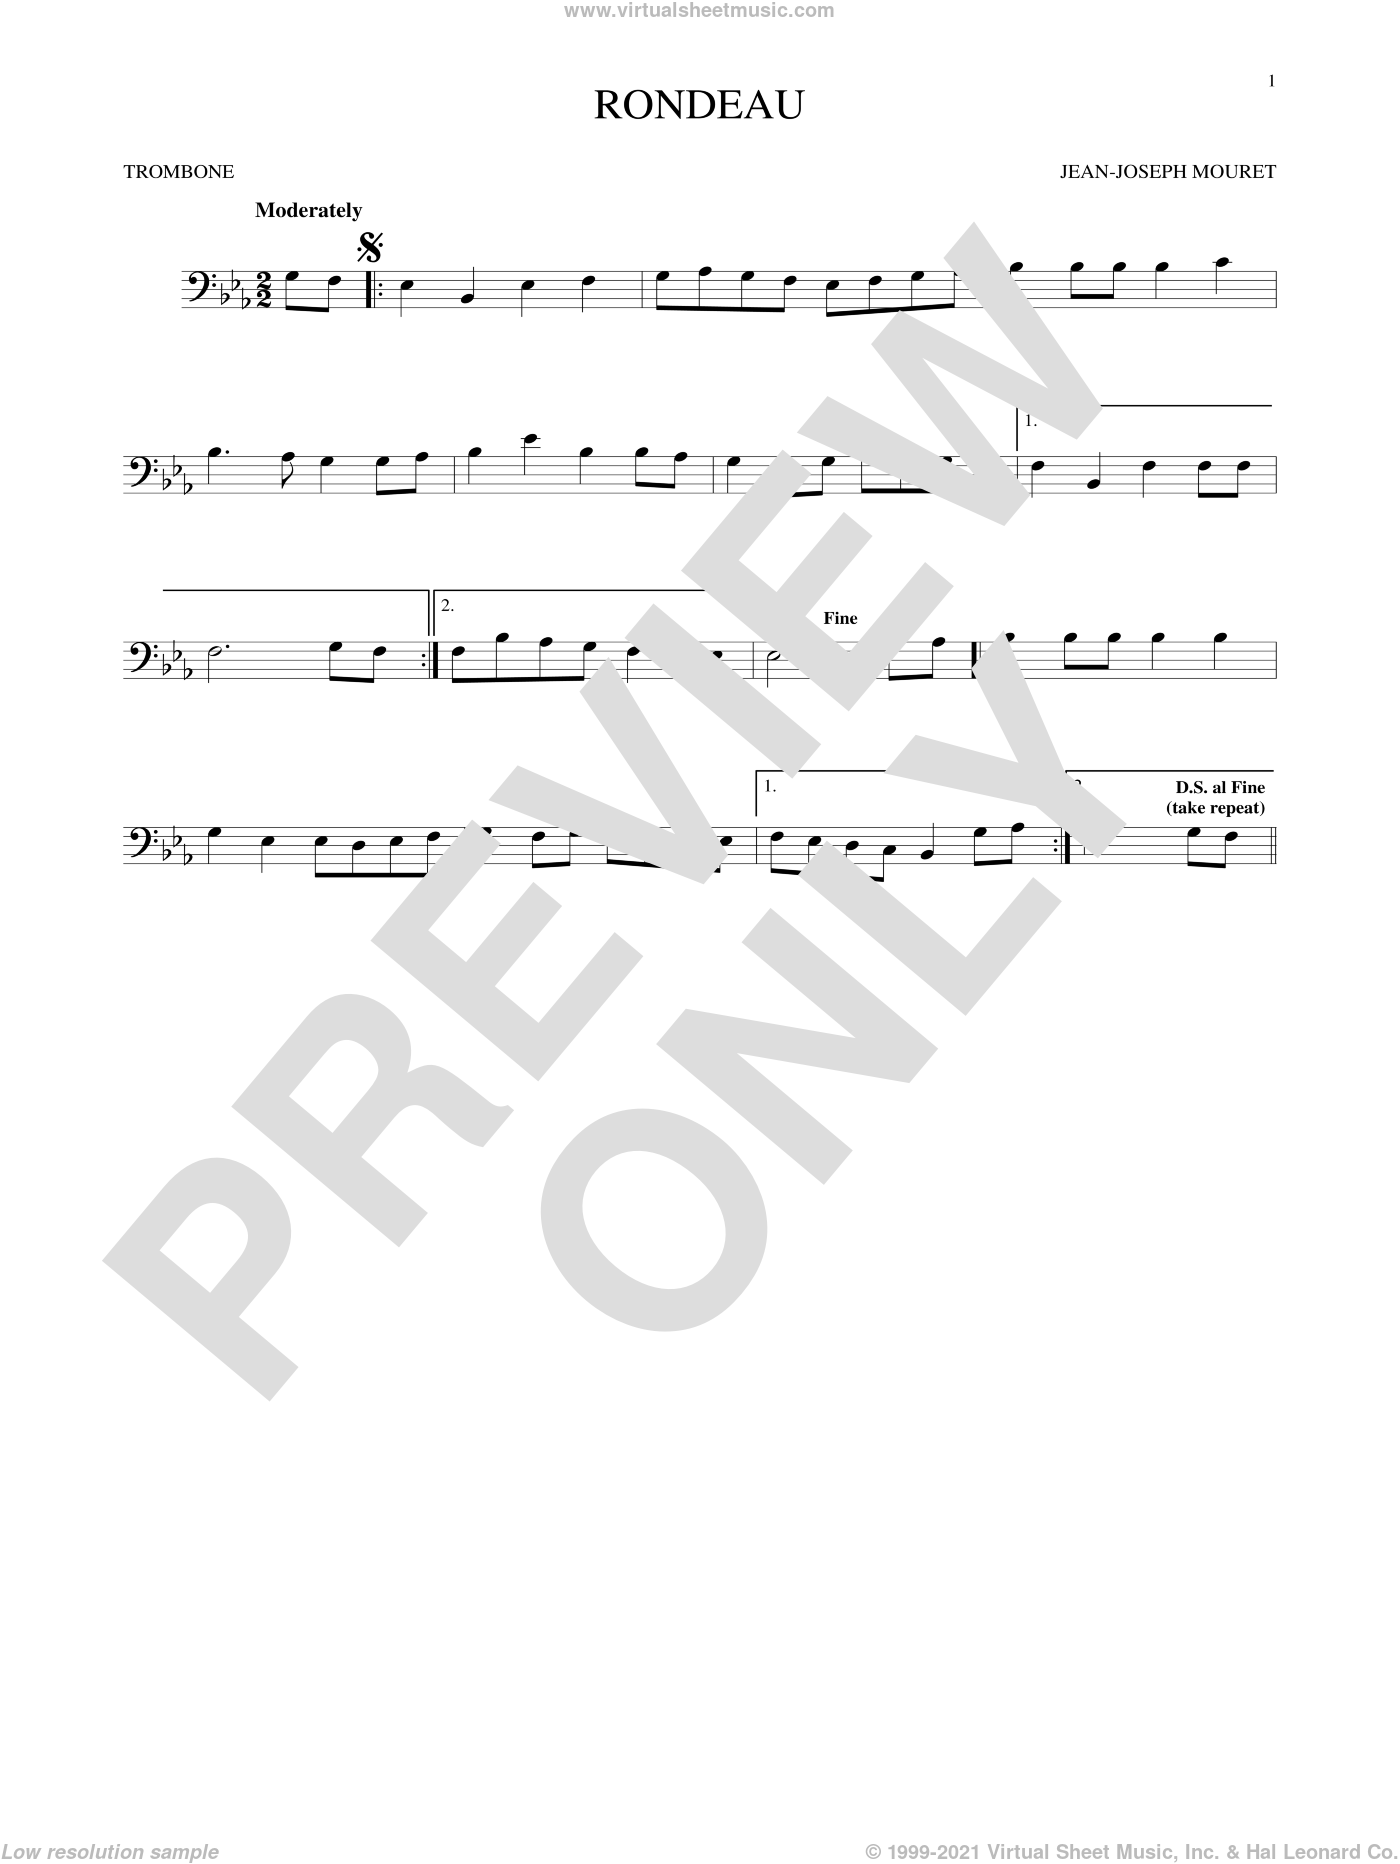 Fanfare Rondeau sheet music for trombone solo by Jean-Joseph Mouret, classical score, intermediate skill level